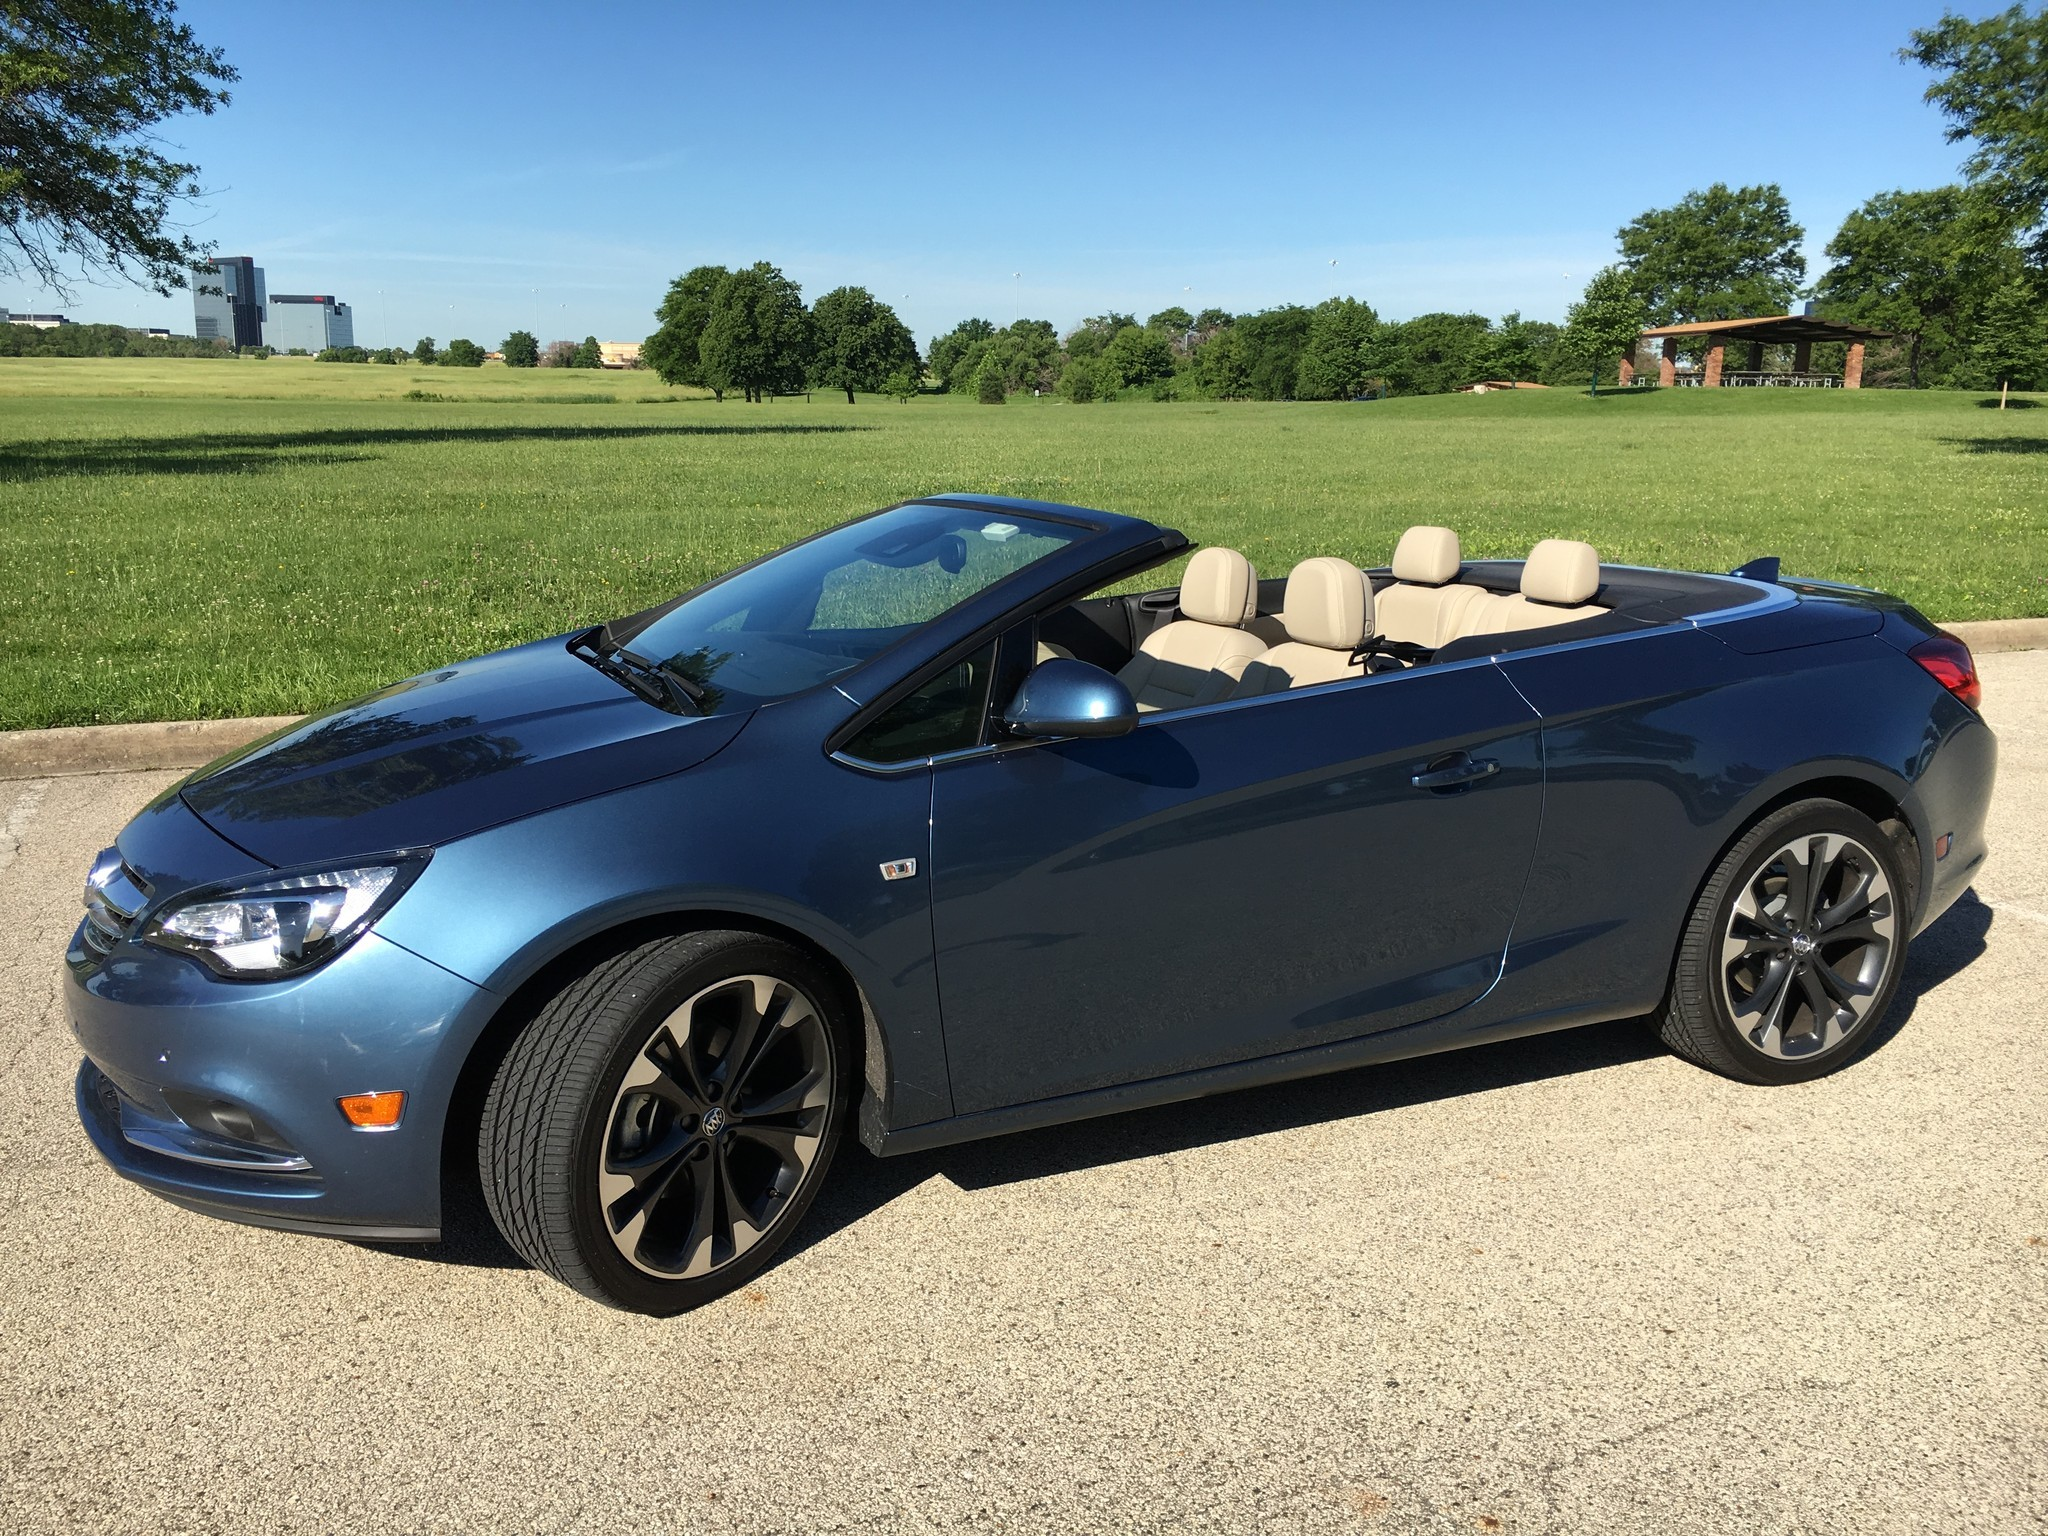 2016 Buick Cascada Convertible Could Be Cool If Not For The Controls